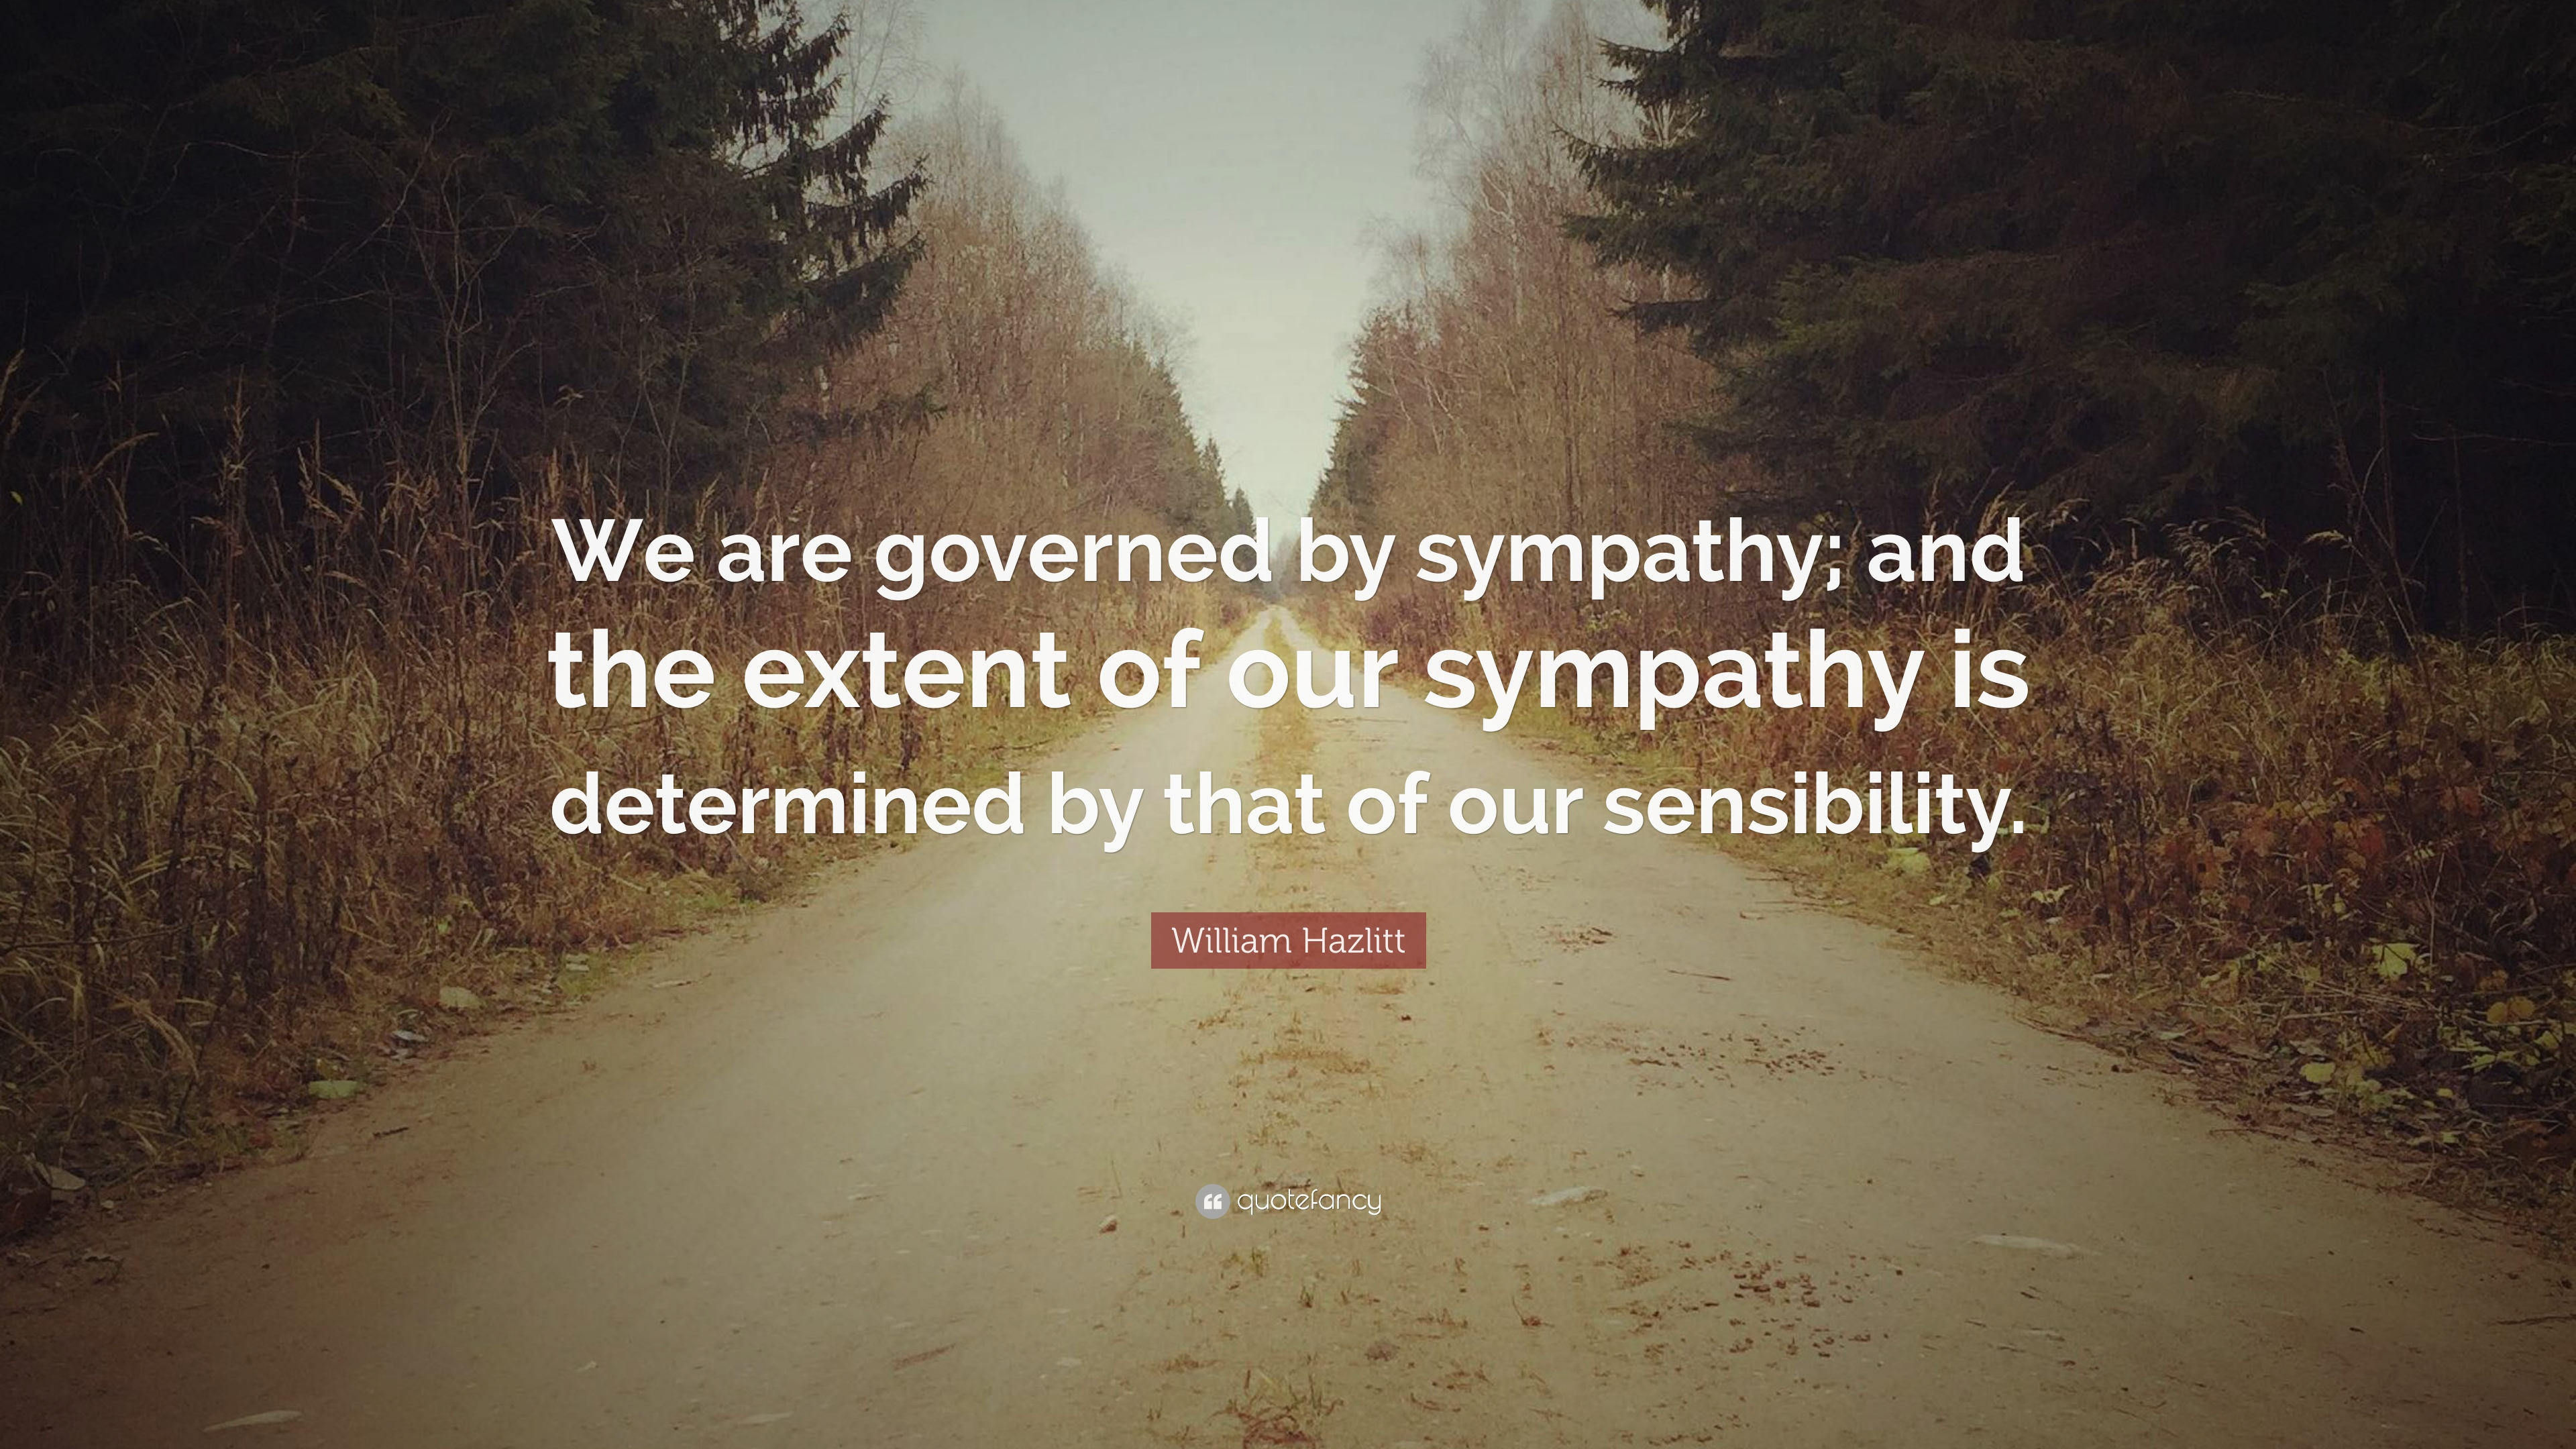 William hazlitt quote we are governed by sympathy and the extent william hazlitt quote we are governed by sympathy and the extent of our thecheapjerseys Gallery